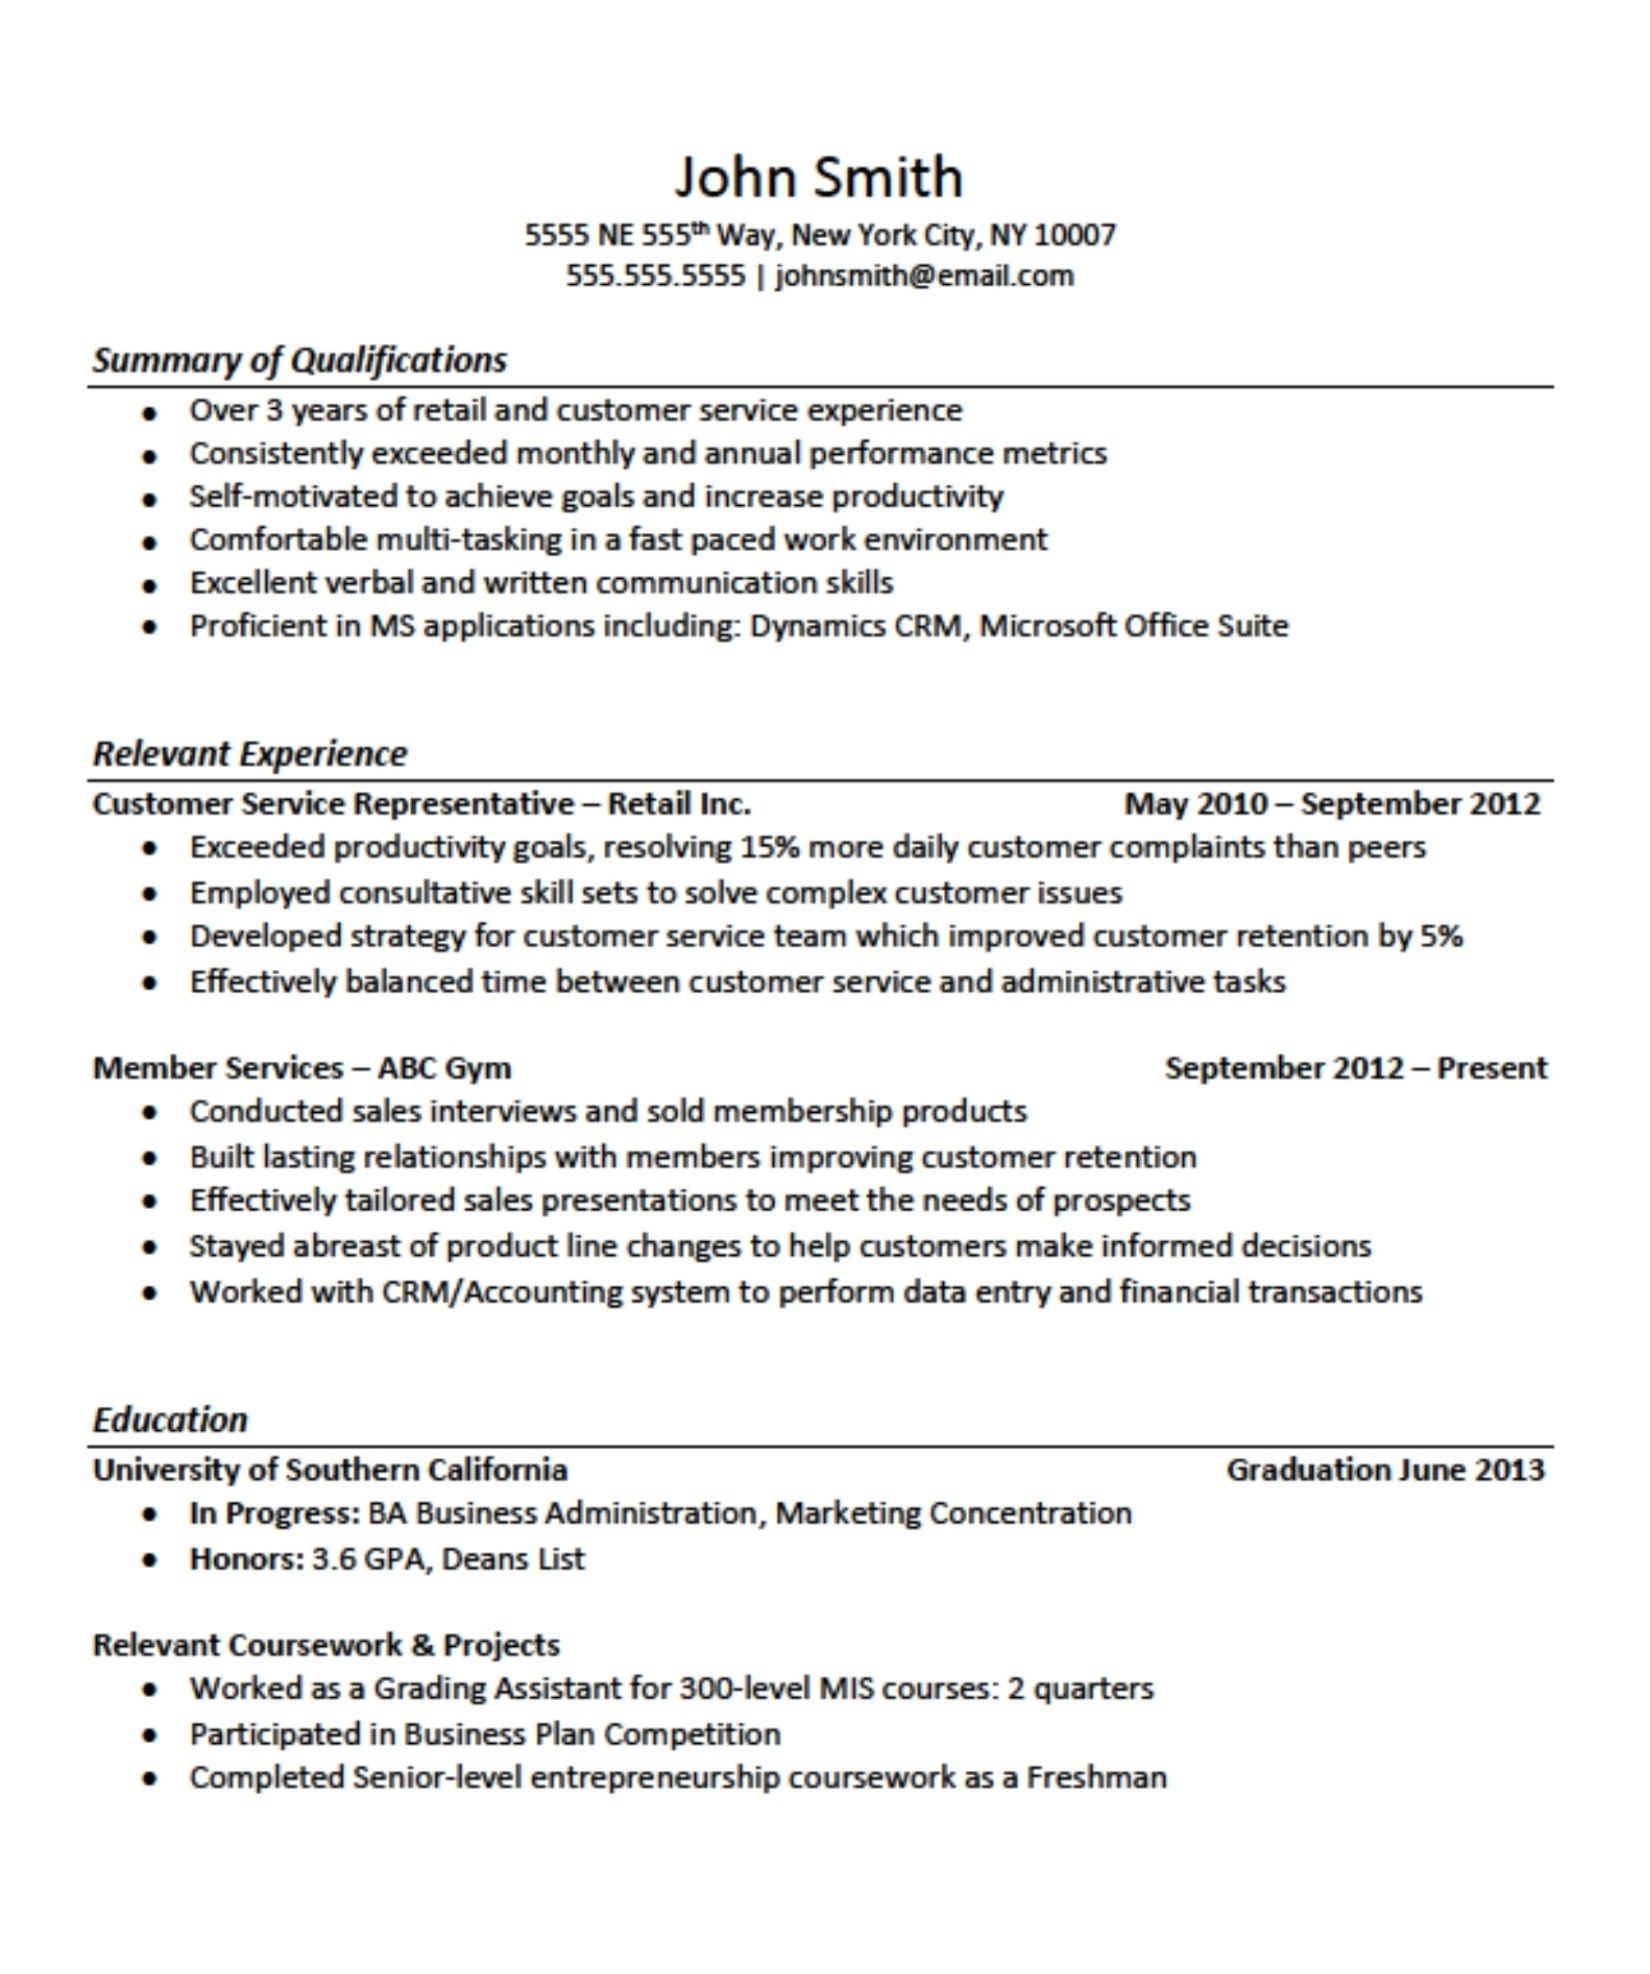 job resume examples no experience summary for with best practice templates hero login Resume Summary For Resume With No Experience